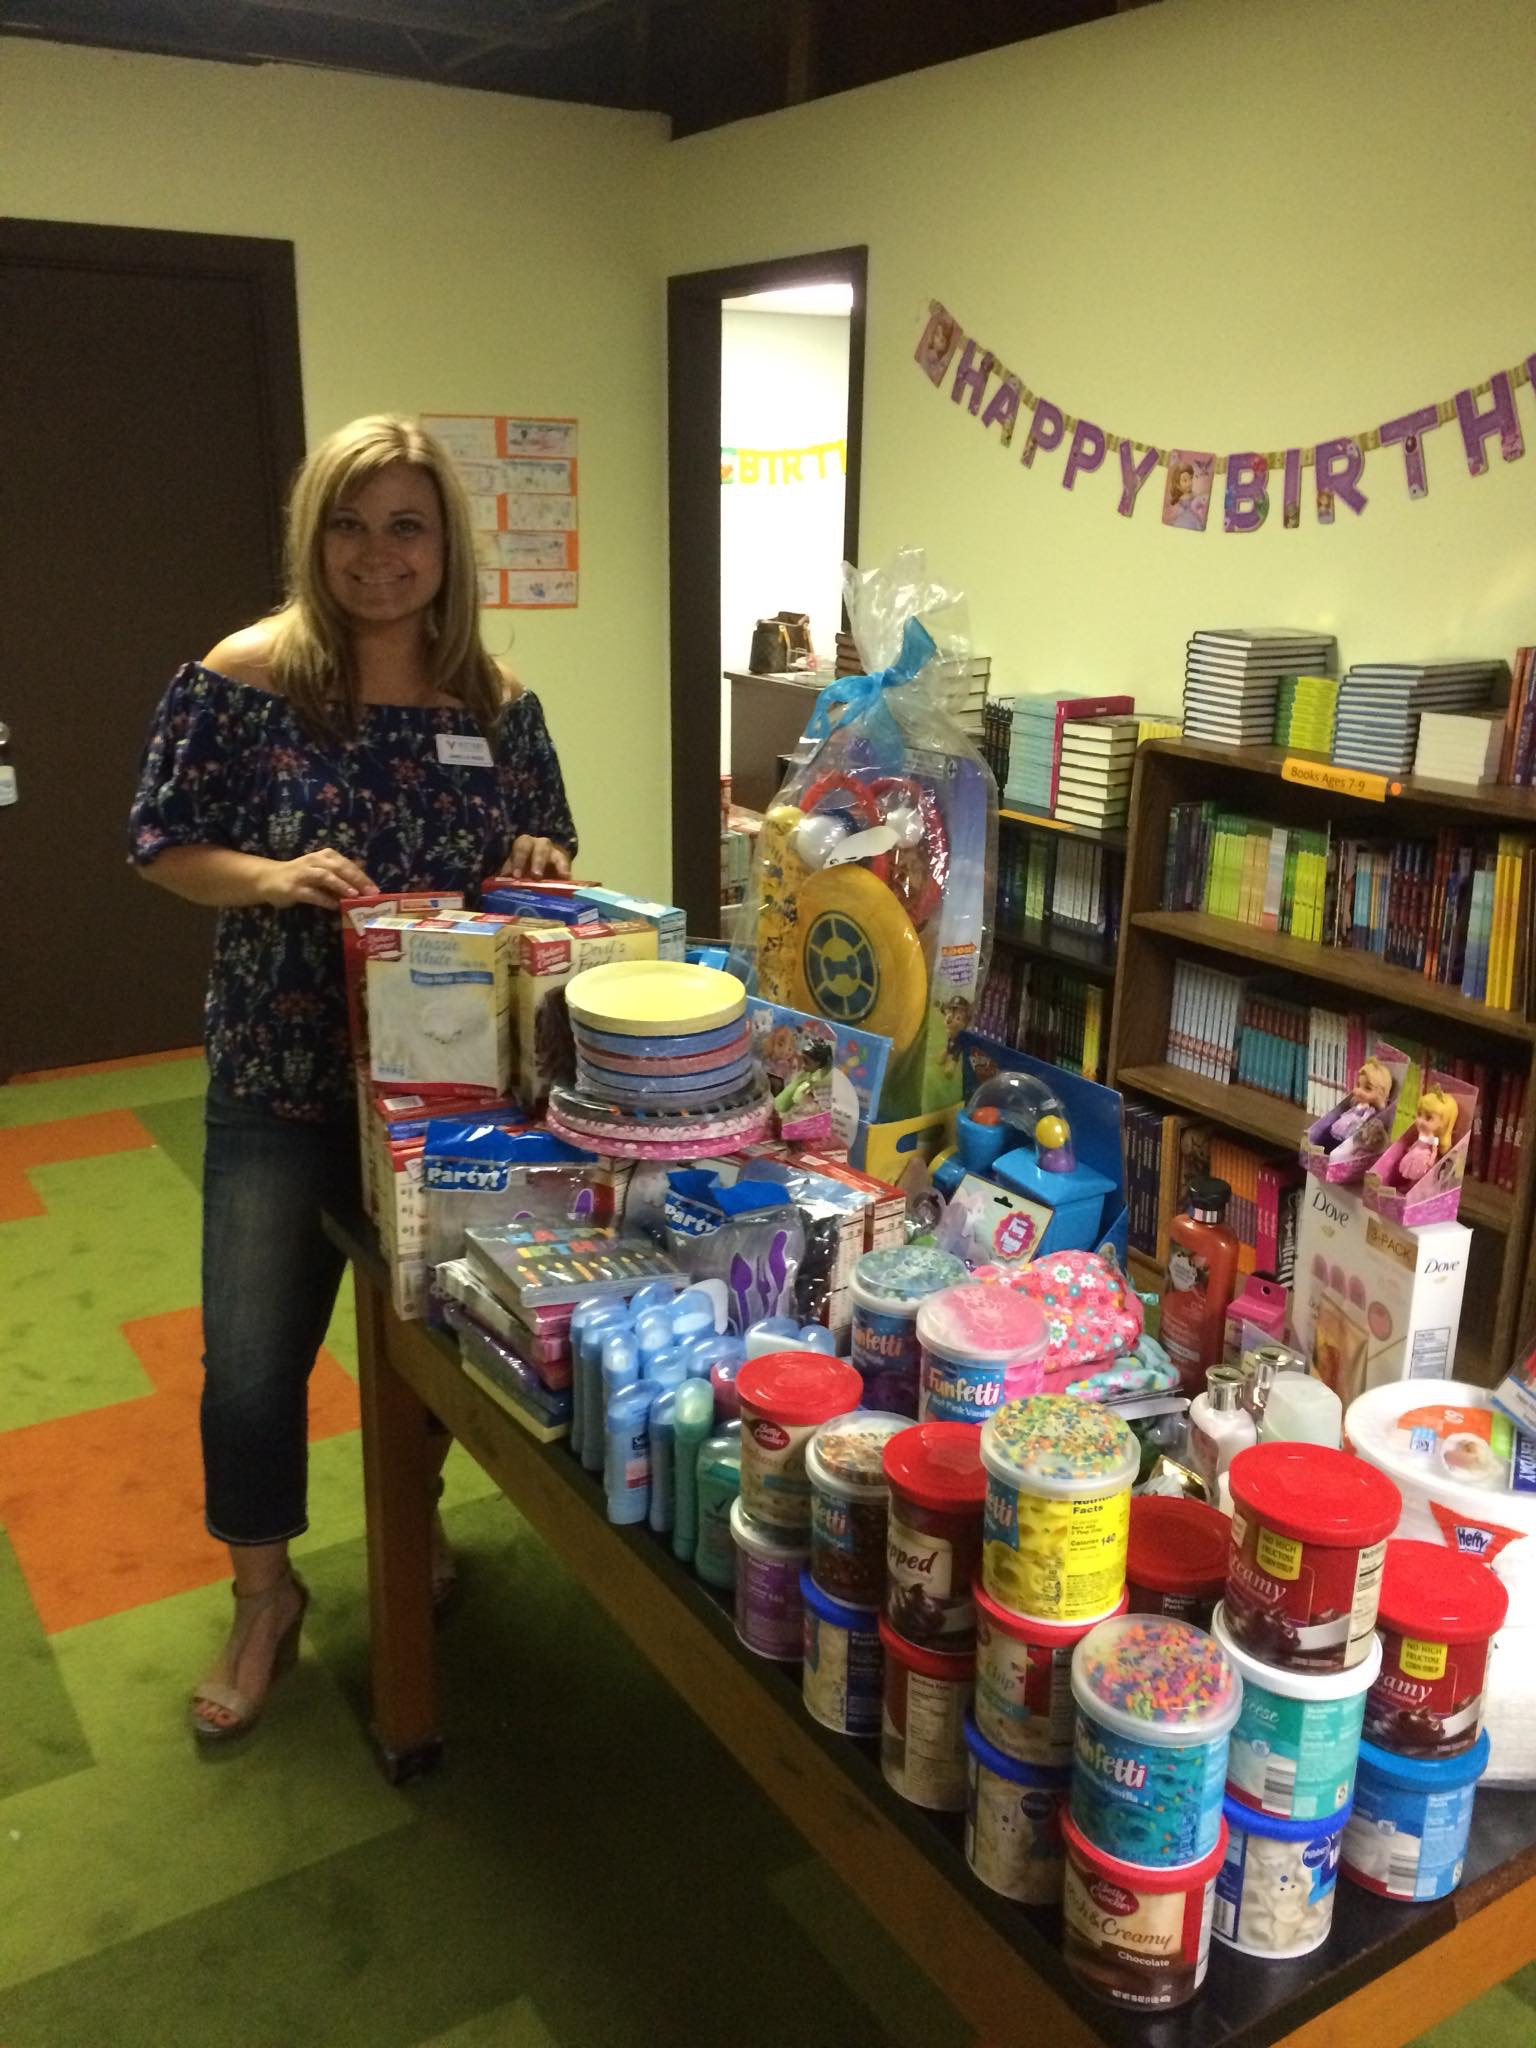 Thank you mama's for making some very special kid's birthdays even more special now! And thank you Wish I May for continuing to give birthday bags for kids in need. - SingleMomzRock's Founder, Janelle Reed, was able to drop off all these donations that was turned in from the mom's in the group on May 1st.